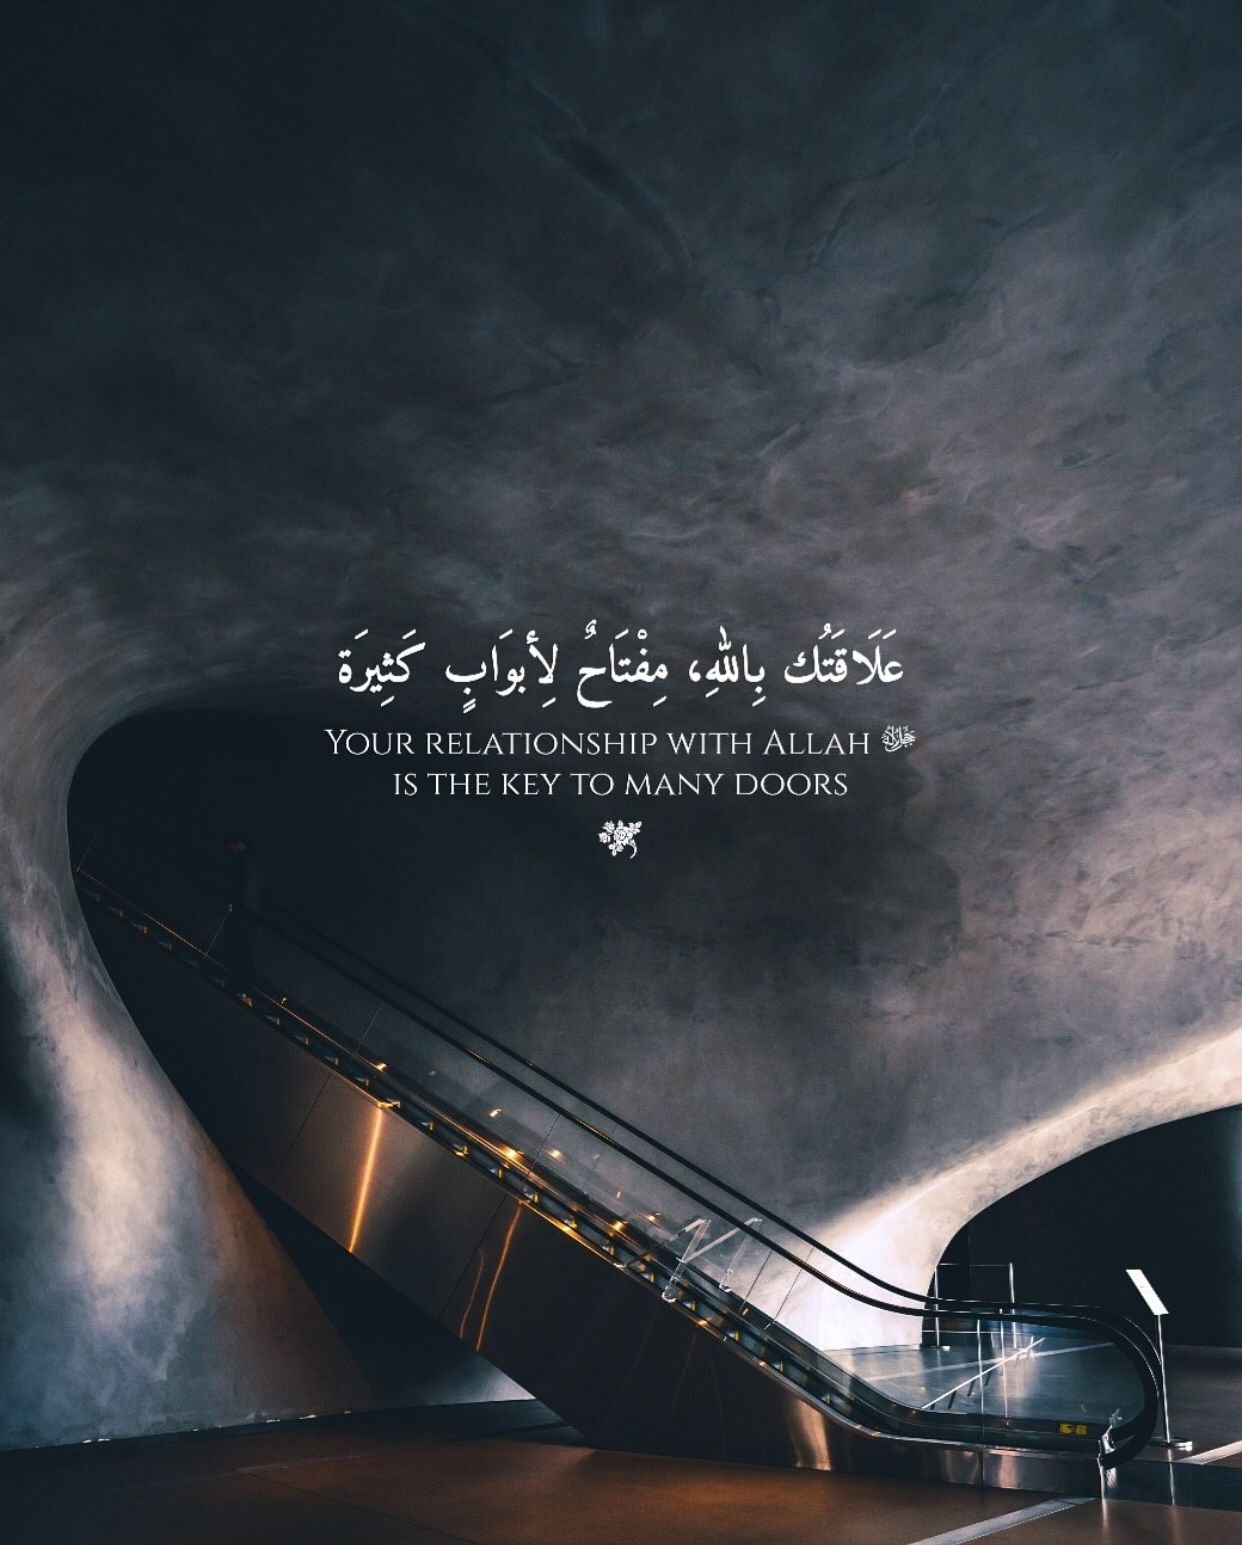 Pin By Fahad Baloch On Quran Verses Islamic Quotes Quran Quotes Inspirational Quran Quotes Islamic Quotes